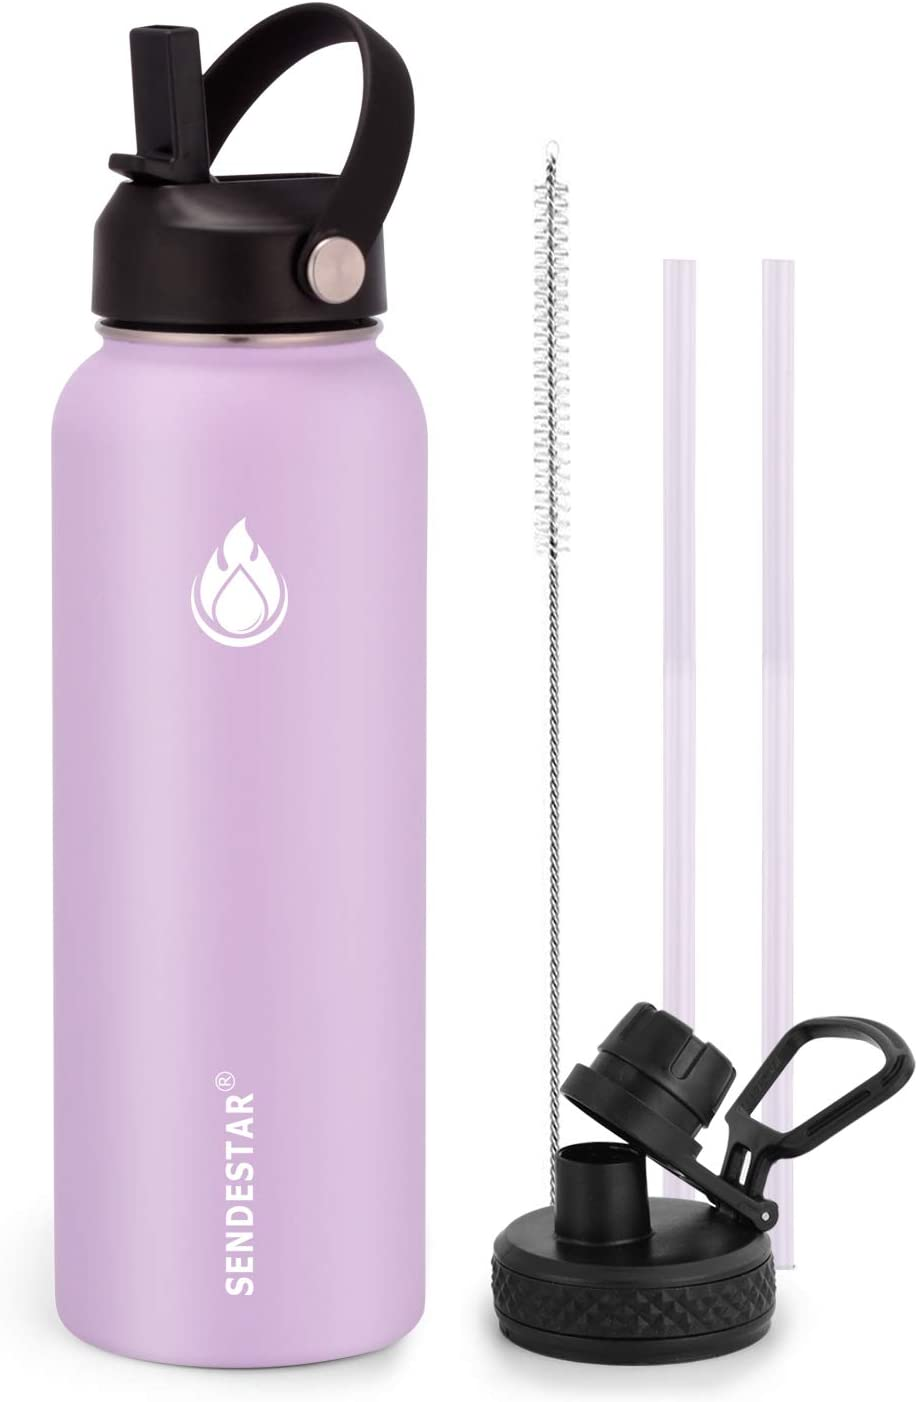 SENDESTAR Water Bottle 32oz Double Wall Vacuum Insulated Leak Proof Stainless Steel Sports Water Bottle—Wide Mouth with New Flex Straw Lid & Spout Lid (lilac)